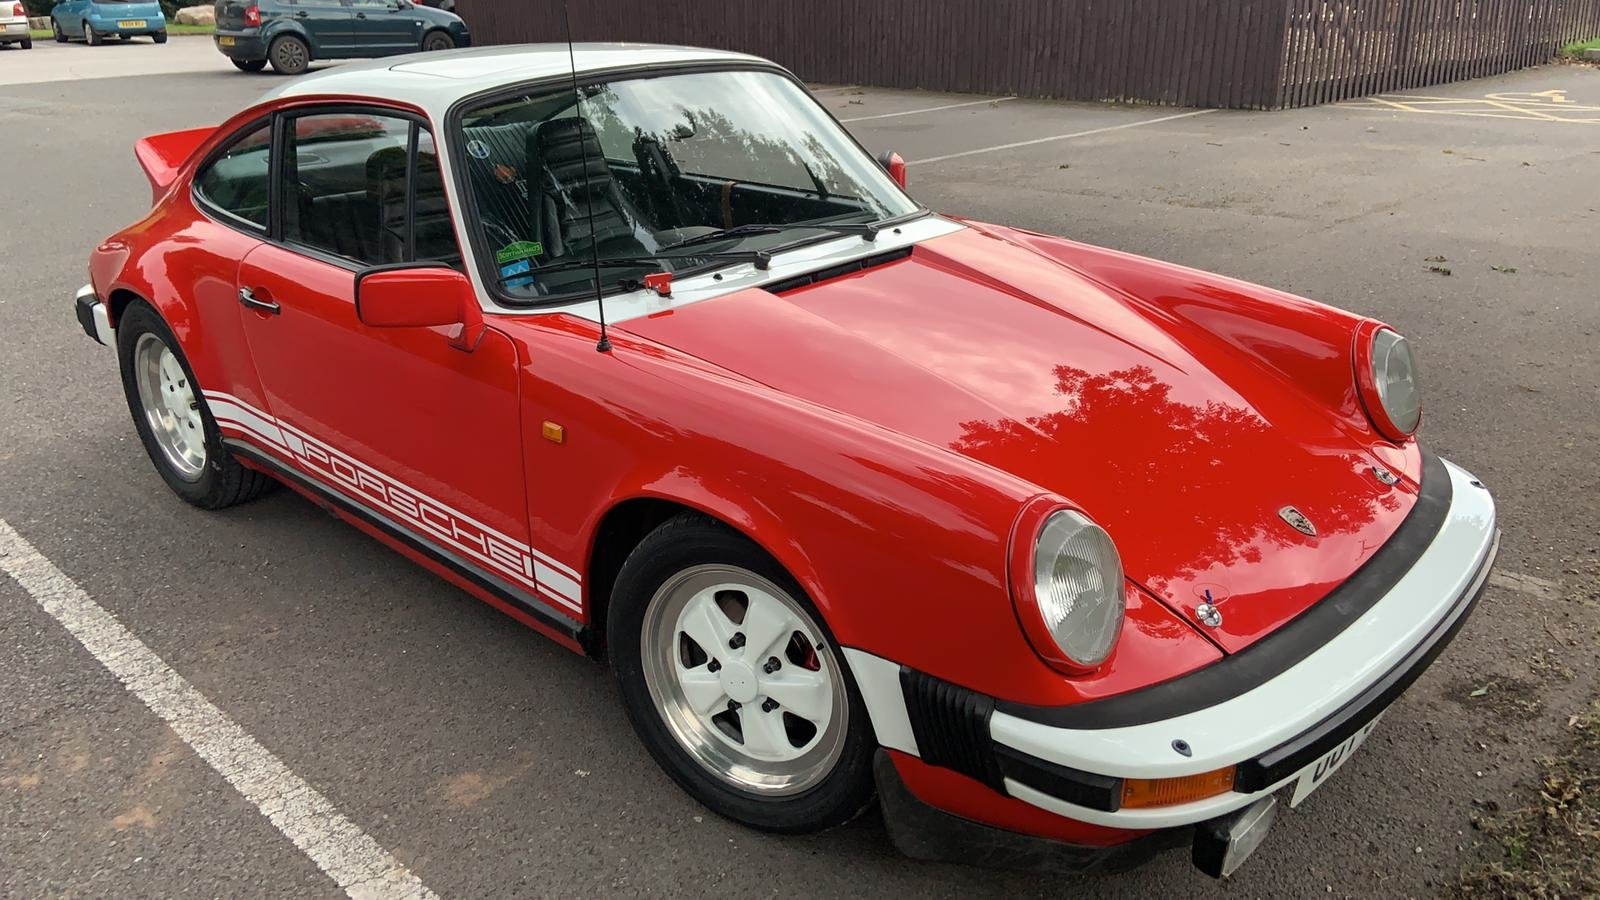 1983 Porsche 911 SC - Recently toured Iceland For Sale (picture 3 of 5)